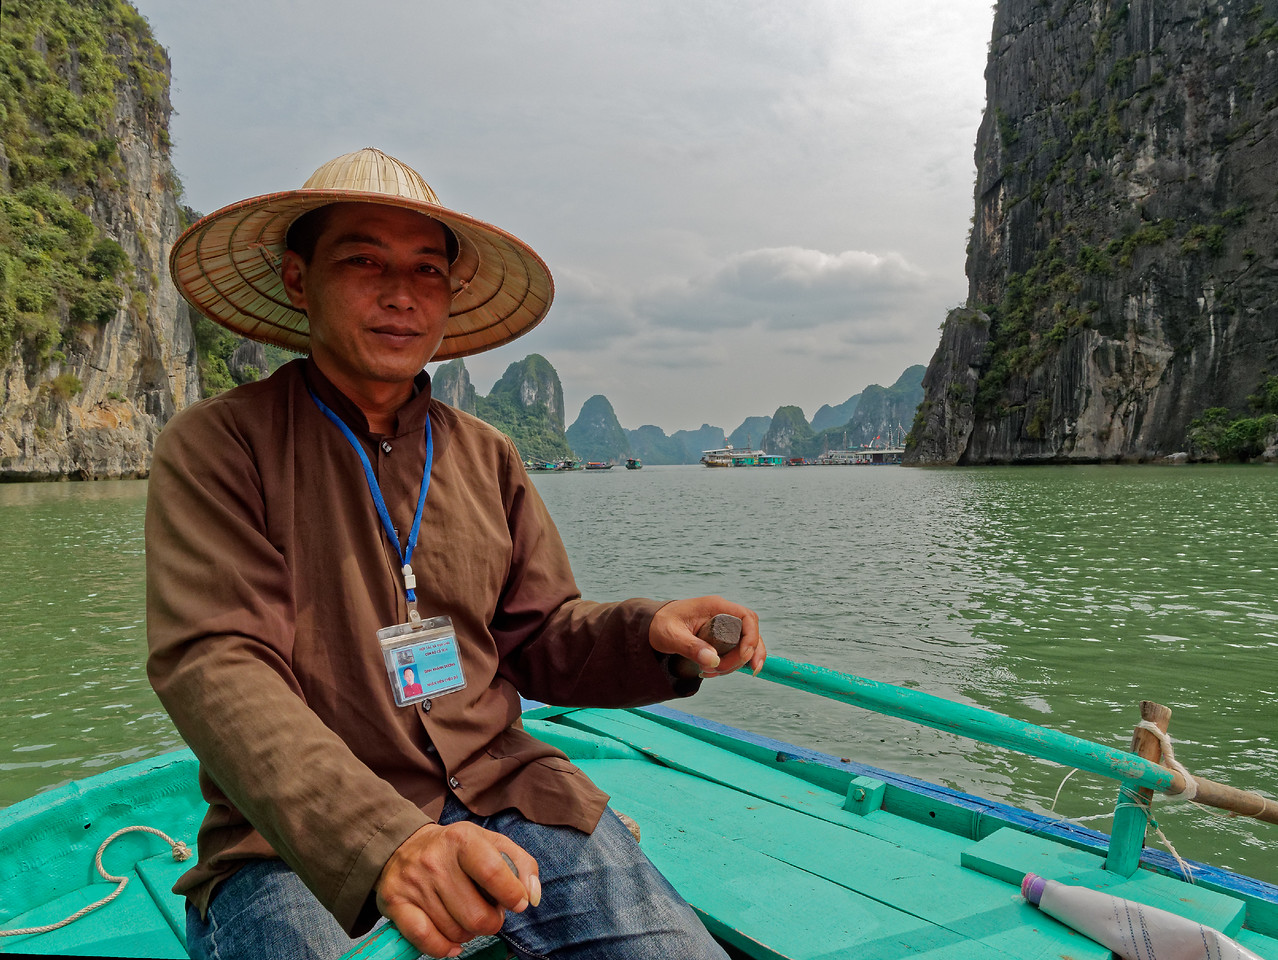 Our boatman, who guided us through several of the bay's caves